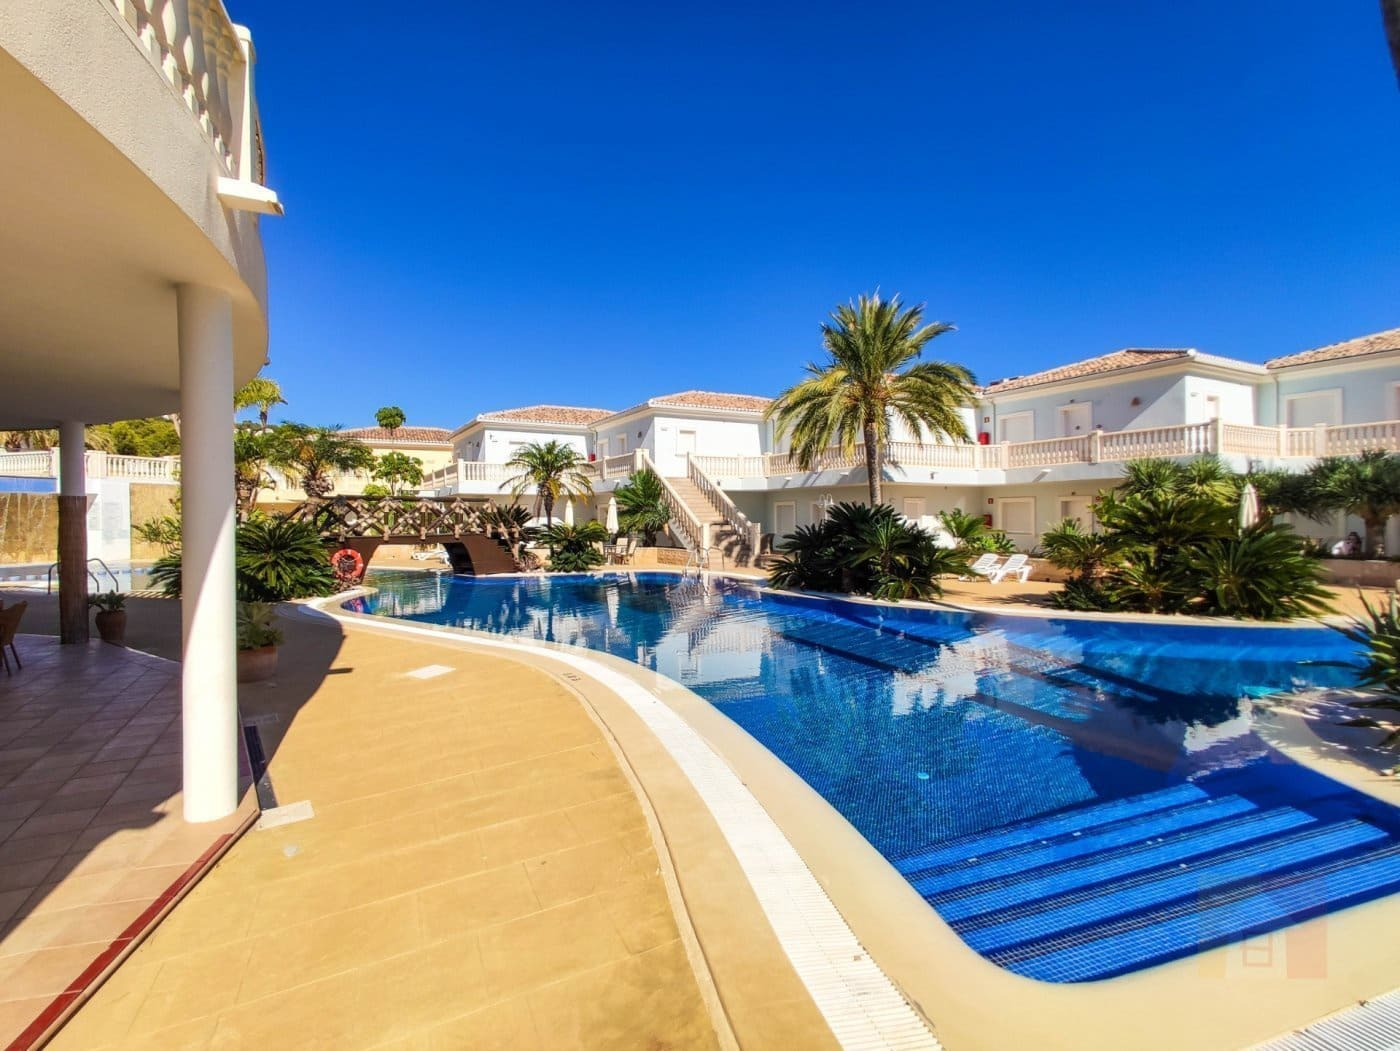 2 bedroom Apartment for sale in Benissa with pool - € 220,000 (Ref: 6110709)